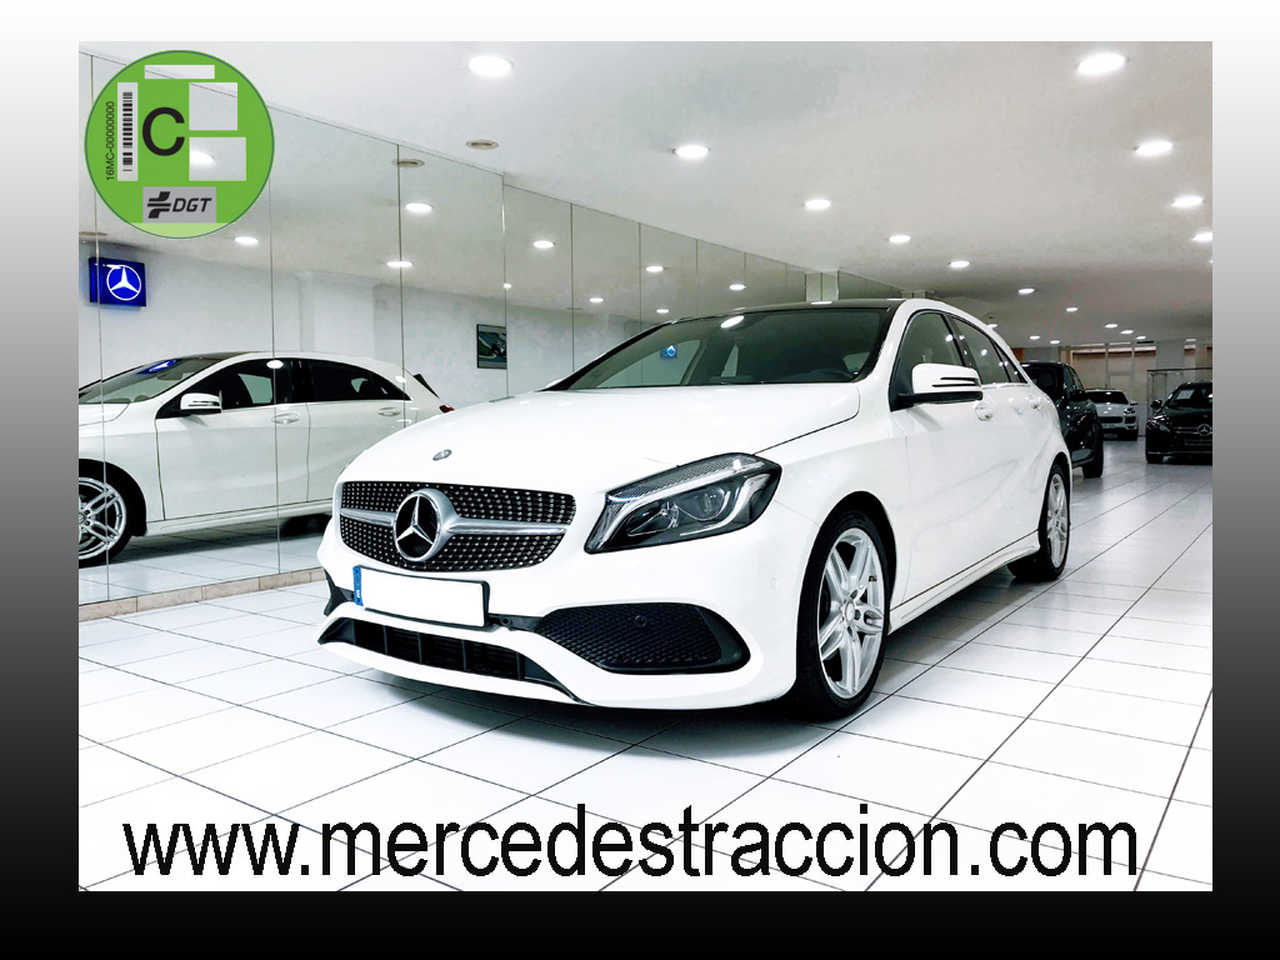 Mercedes Clase A 180 d 7G-DCT/AMG Line/Techo Panorámico/Navi   - Foto 1